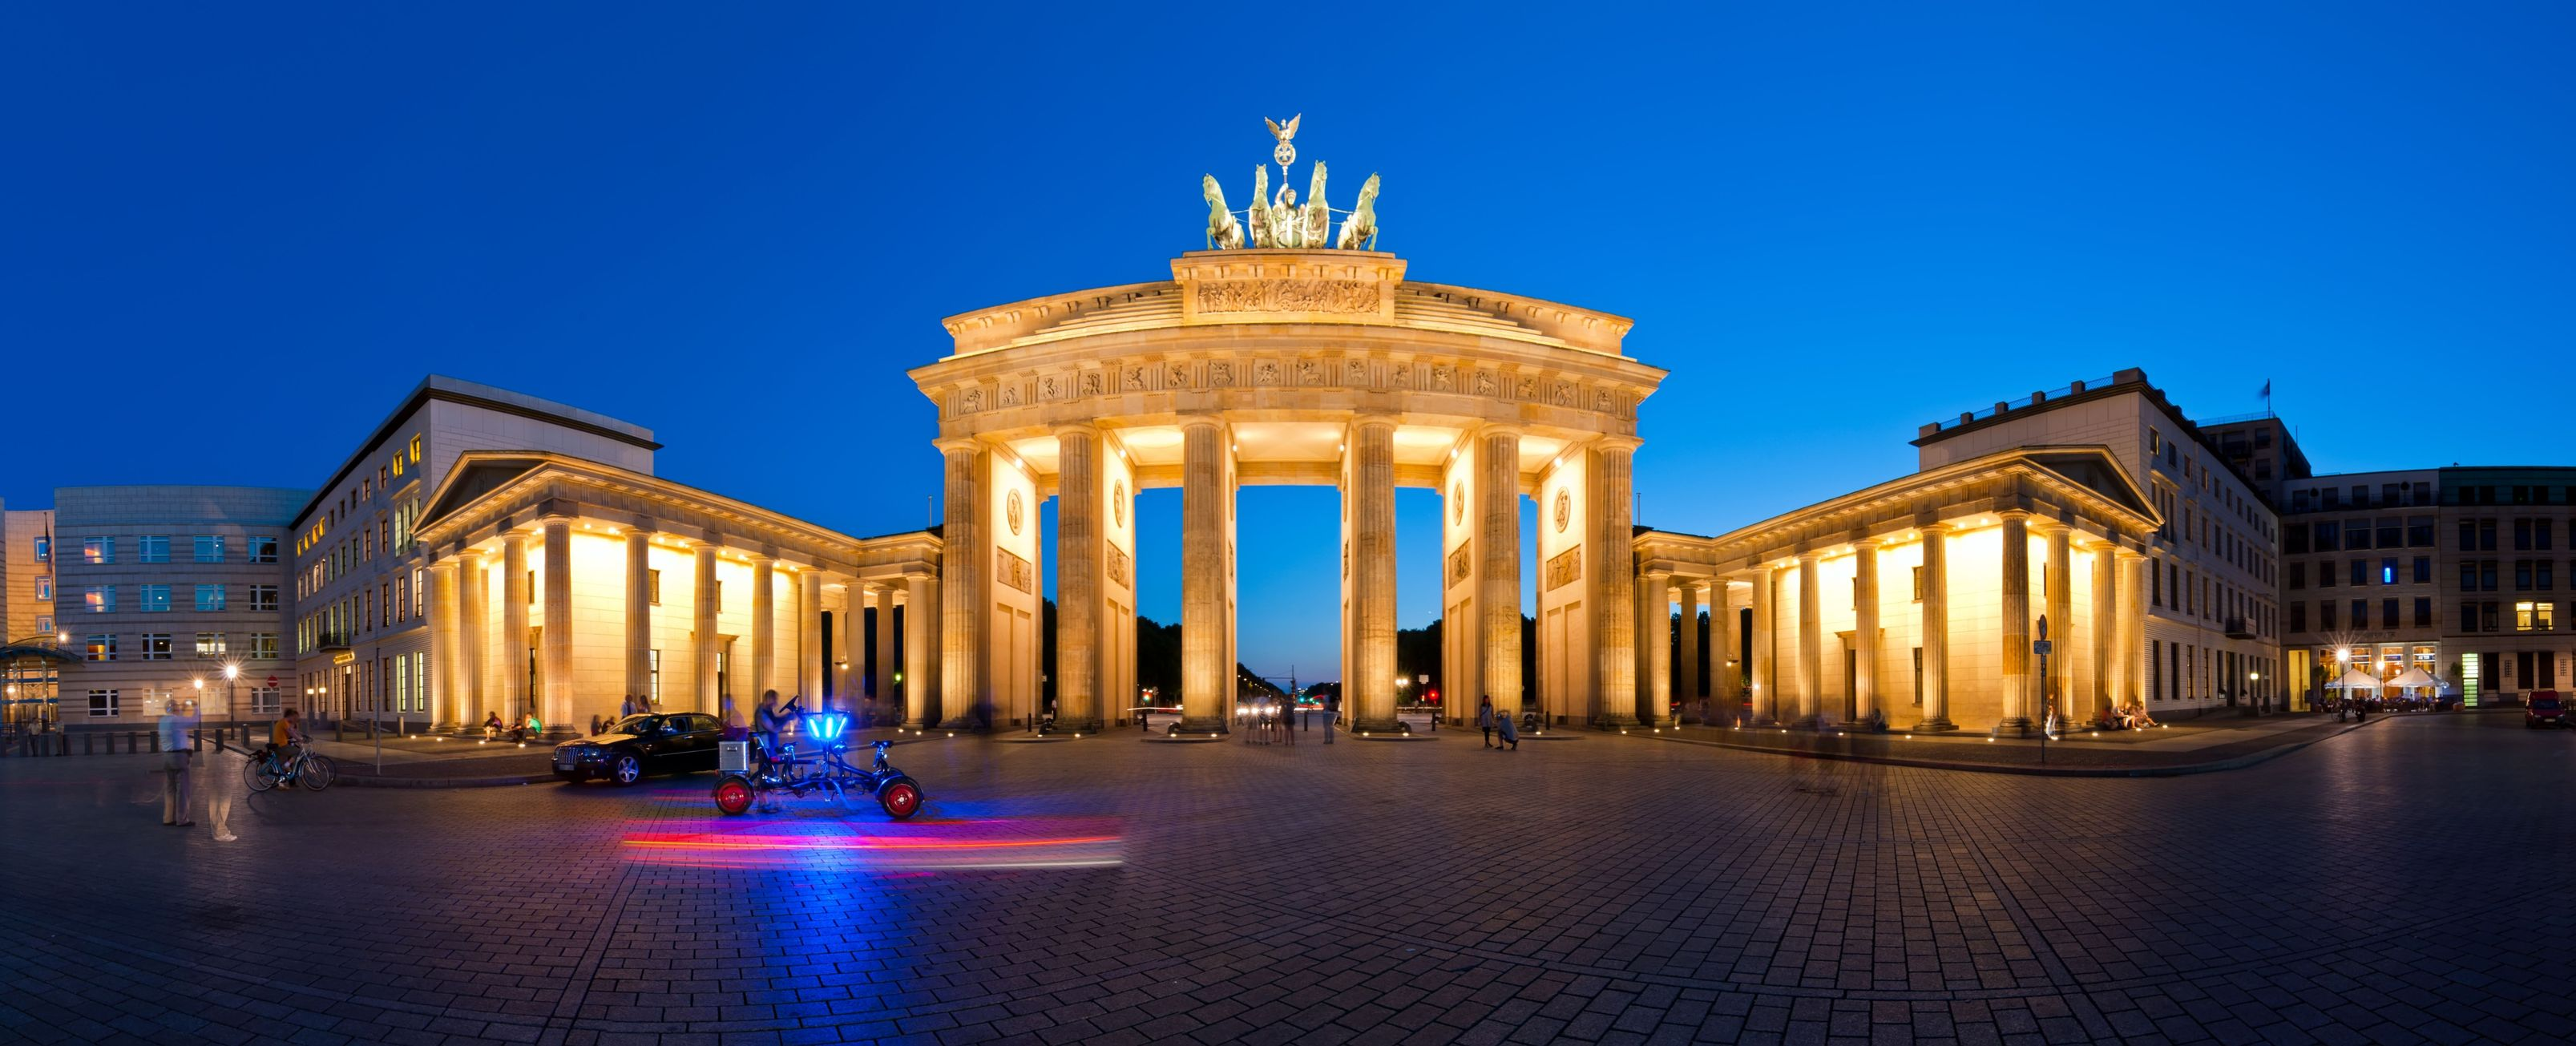 Panorama-Brandenburg-Gate-in-Berlin-Germany.jpg